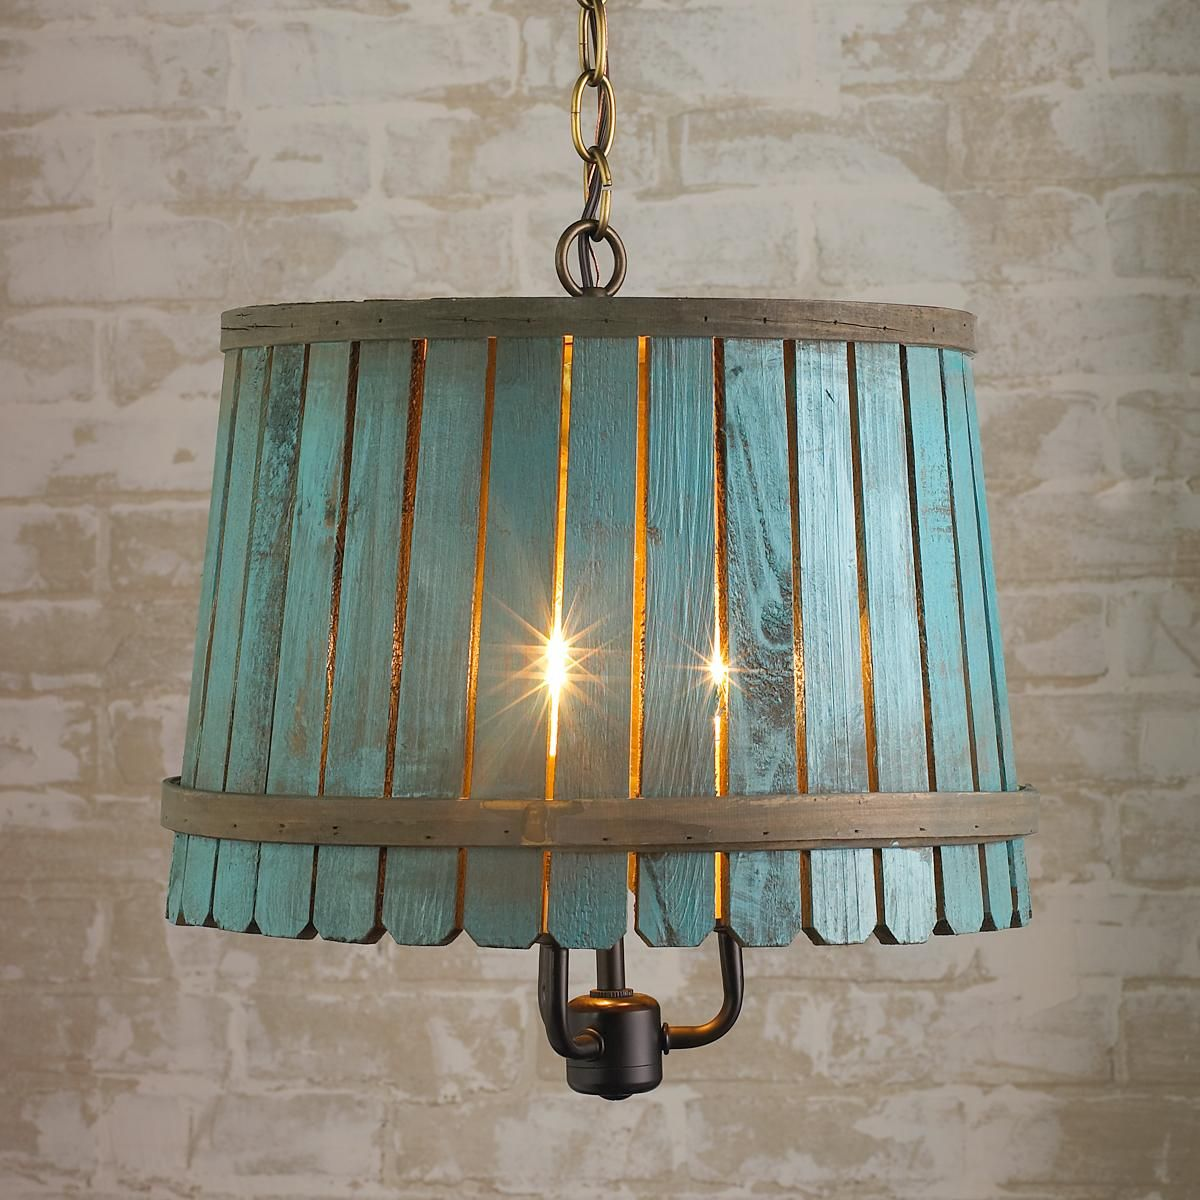 I love this!  Anybody have an idea how you could DIY?  I want to try it - at the very least you could cut out a hole and put an IKEA hanging lamp kit through.  Oh, and would have to get a hanging chain.